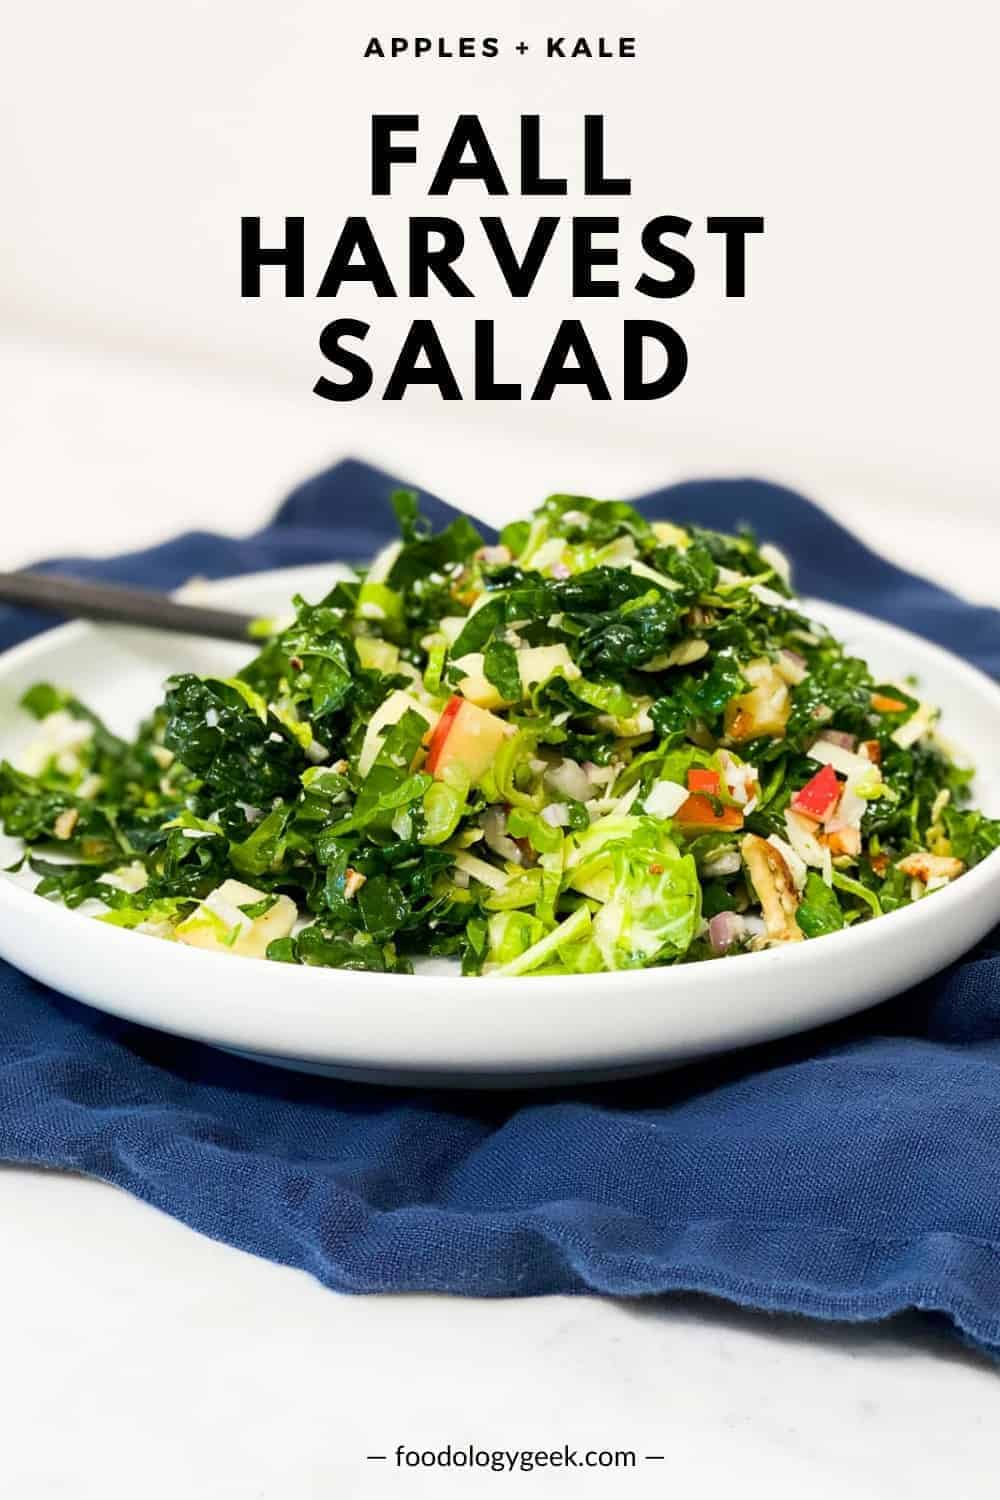 fall harvest salad on a white plate with ab lue napkin